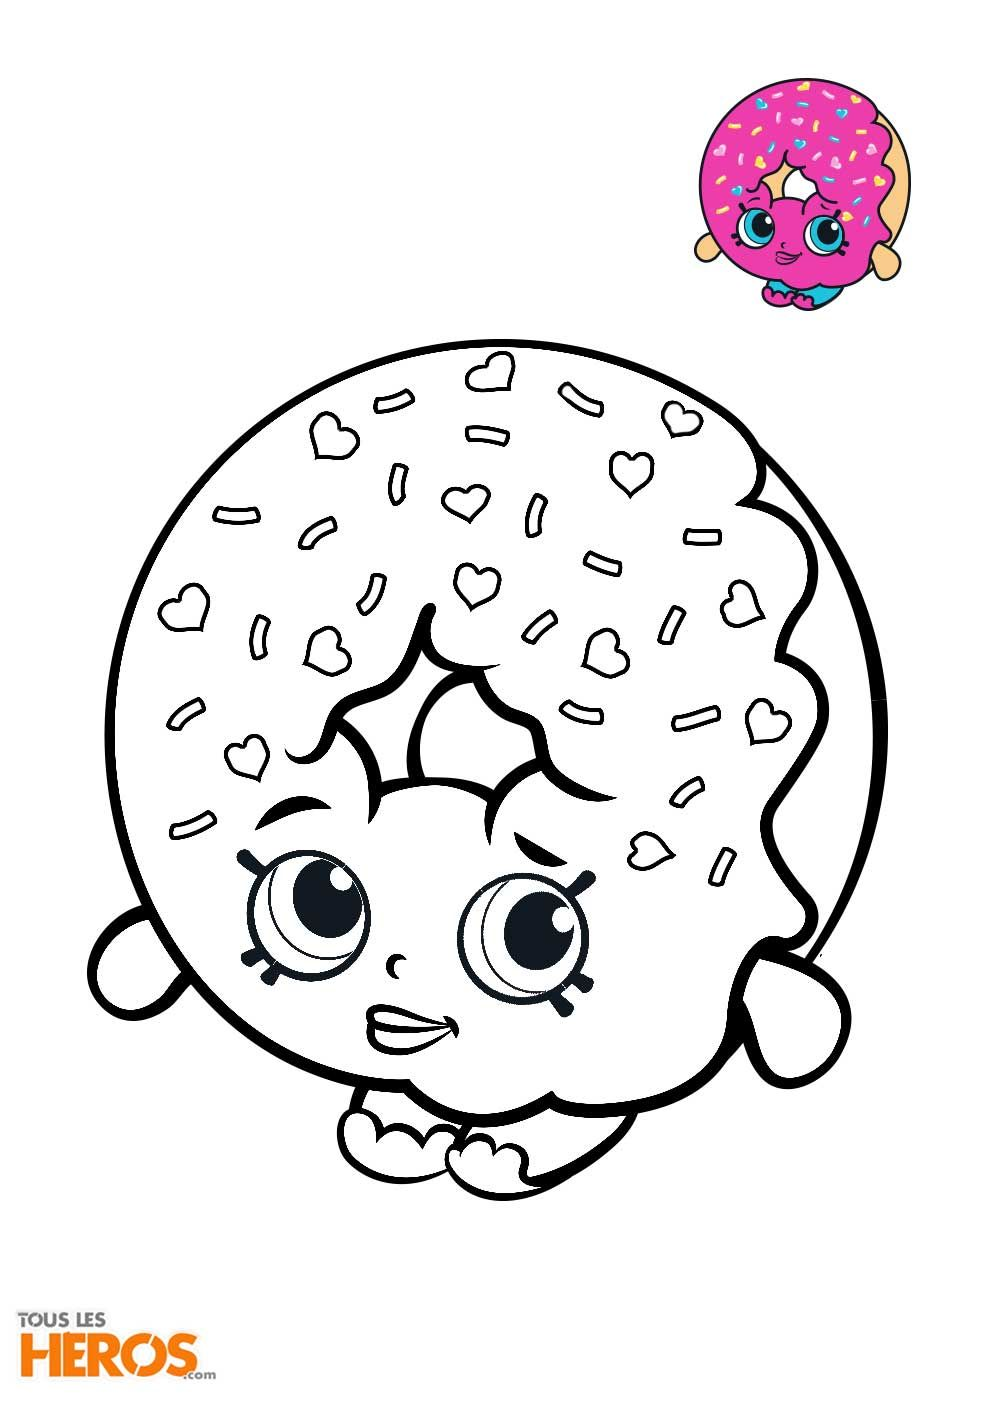 Pin By Julie Brossard On Crafts Shopkin Coloring Pages Shopkins